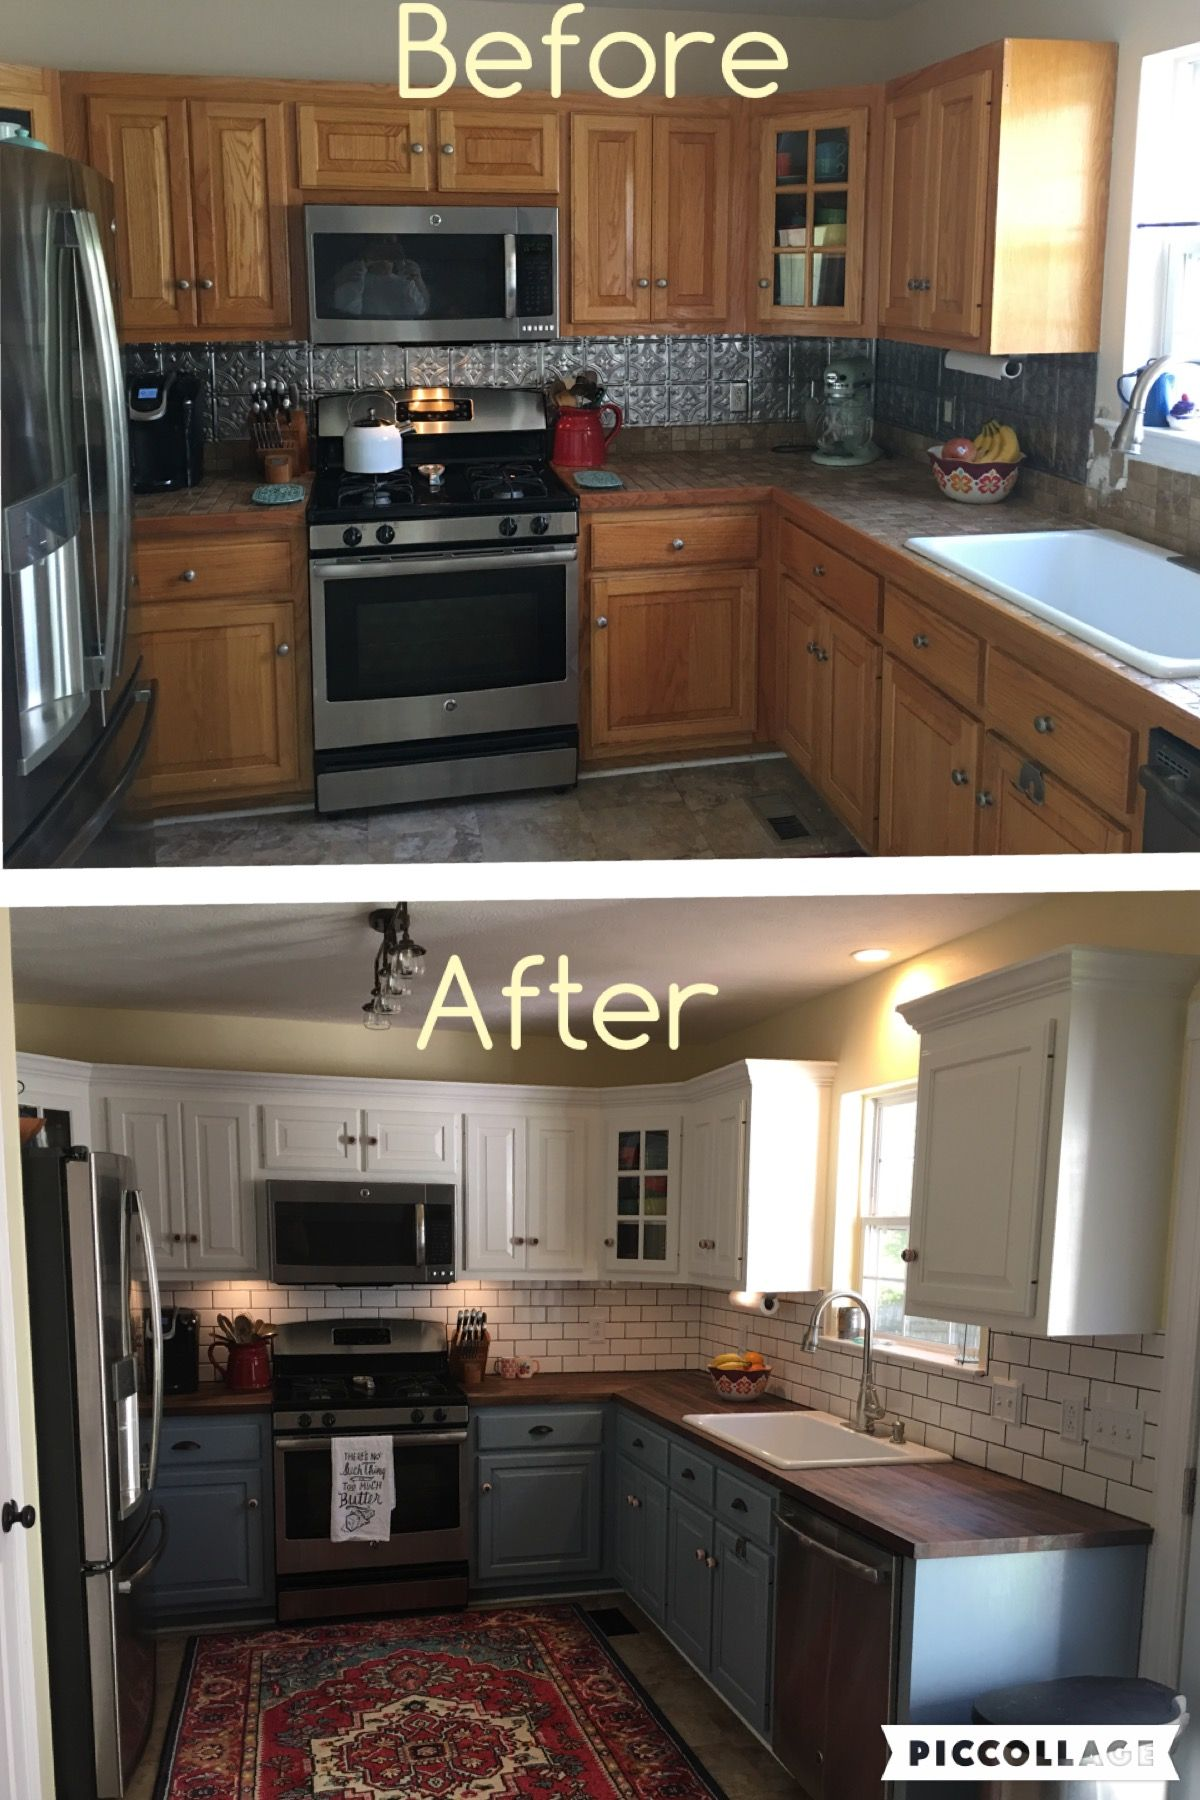 Kitchen Updates Corian Sinks Two Toned Cabinets Valspar Cabinet Enamel From Lowes Successful Updating Best Paint By Far